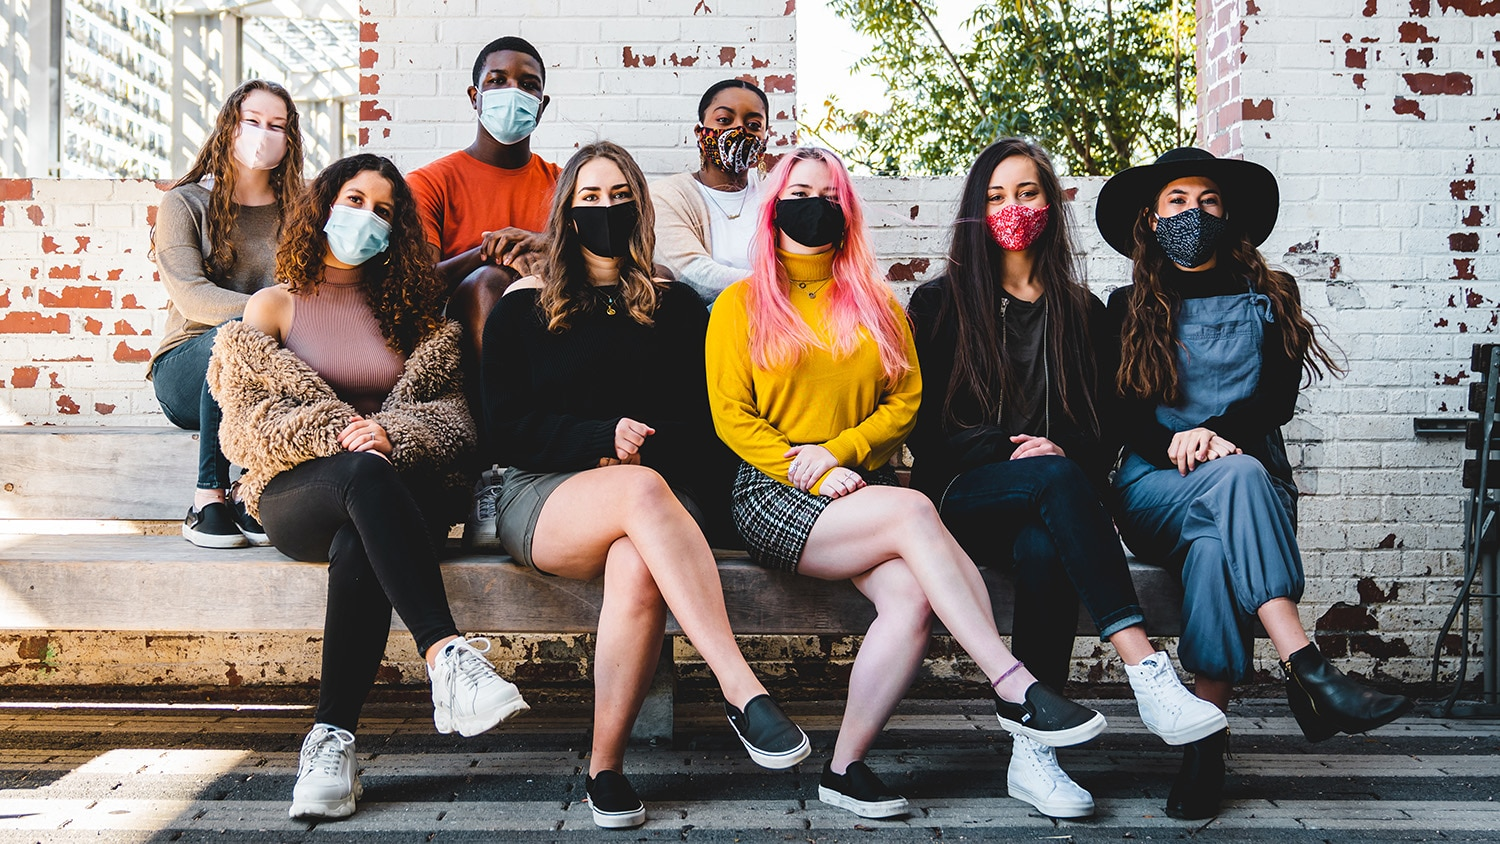 A group photo of 8 students from Fusion Dance Crew wearing protective face masks